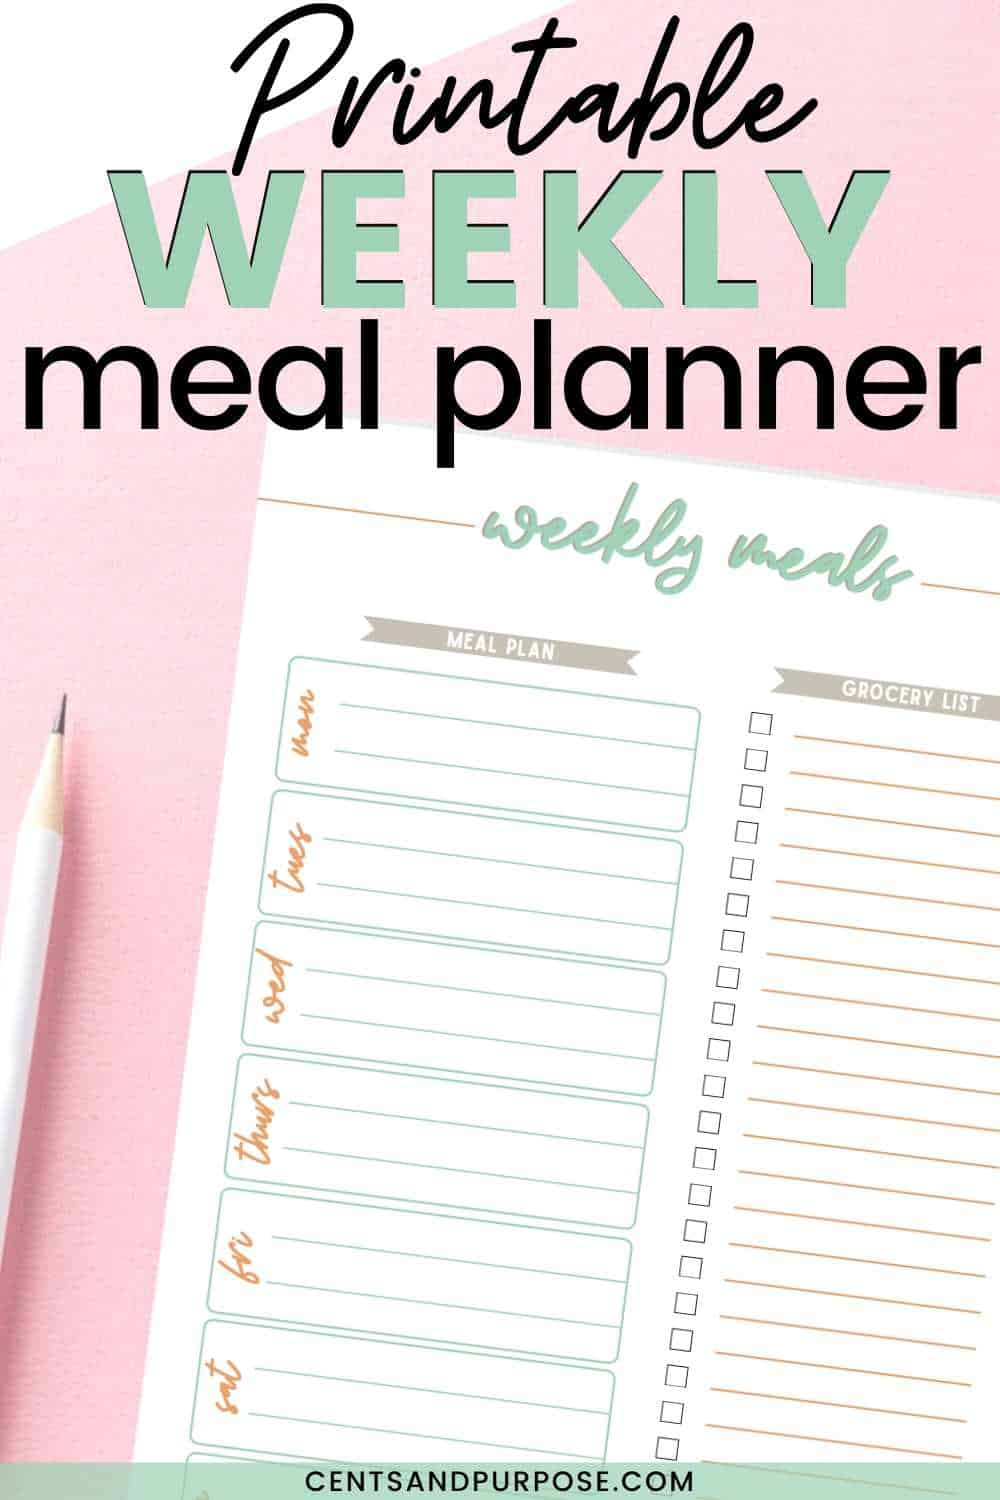 Meal planner page with grocery list, white pencil and text that reads: Printable weekly meal planner